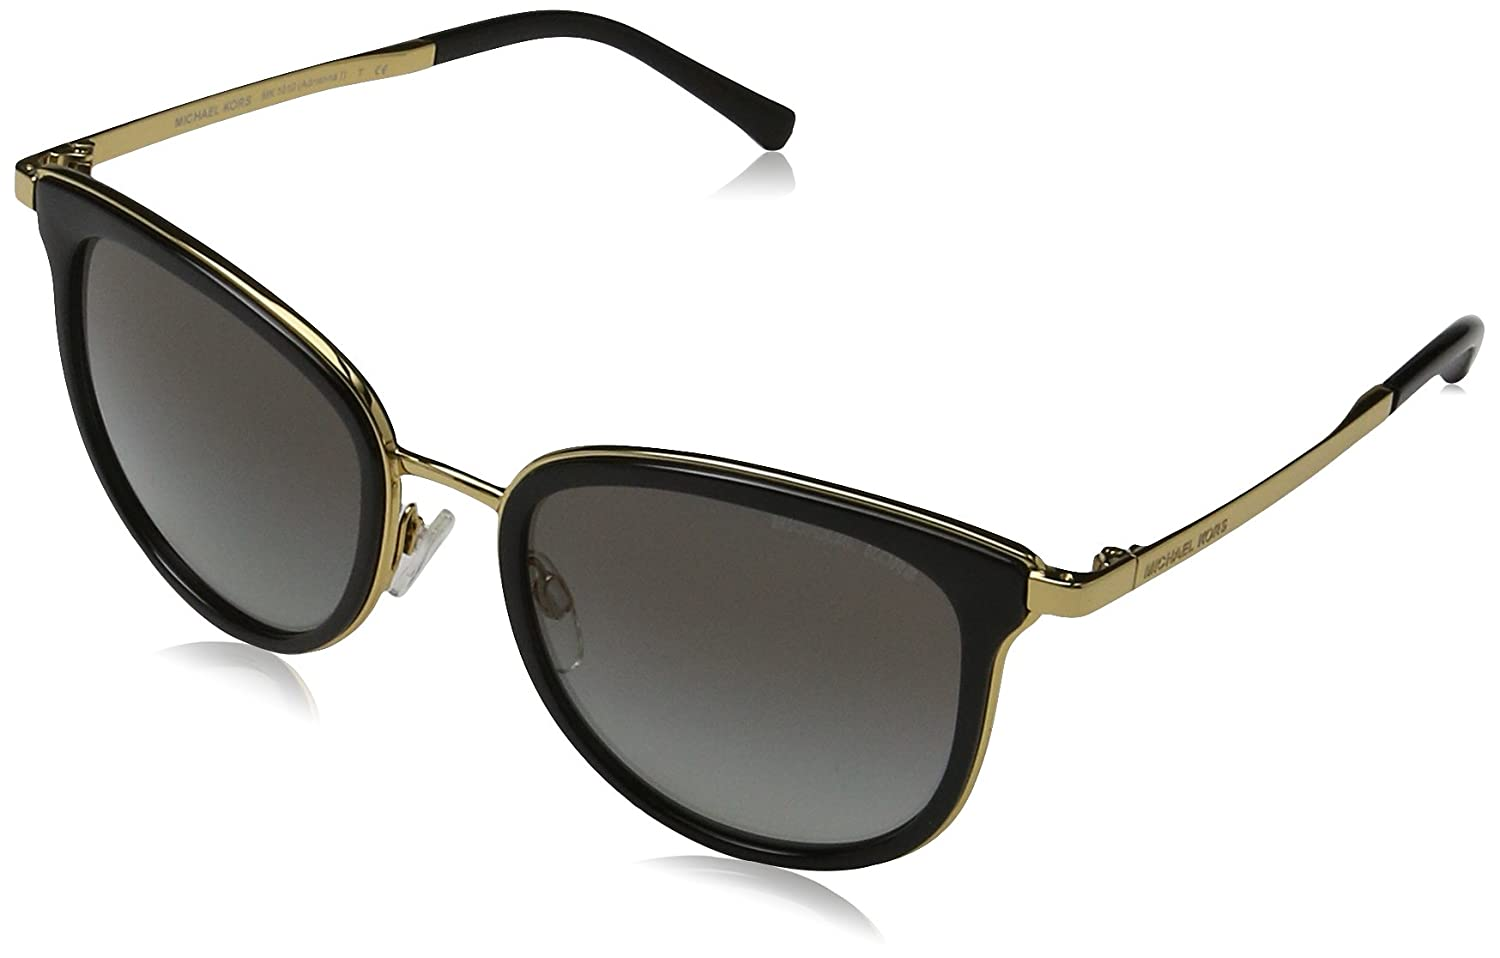 ee872d8ff4 Amazon.com  Michael Kors Women s Adrianna I MK1010 Black Gold Sunglasses   Clothing